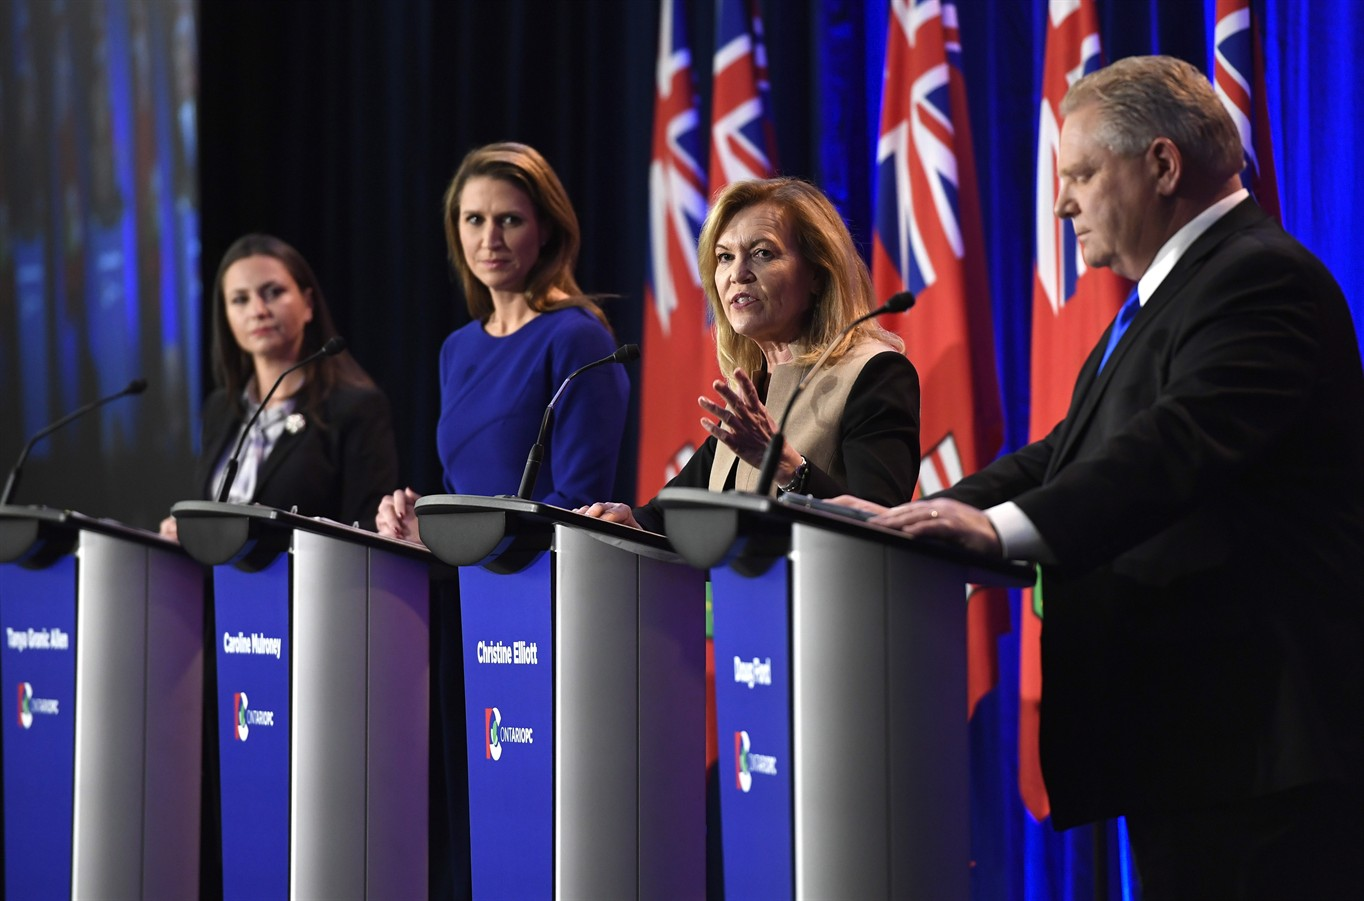 Lawyer for disenfranchised party member seeks Ontario Tory leadership race extension